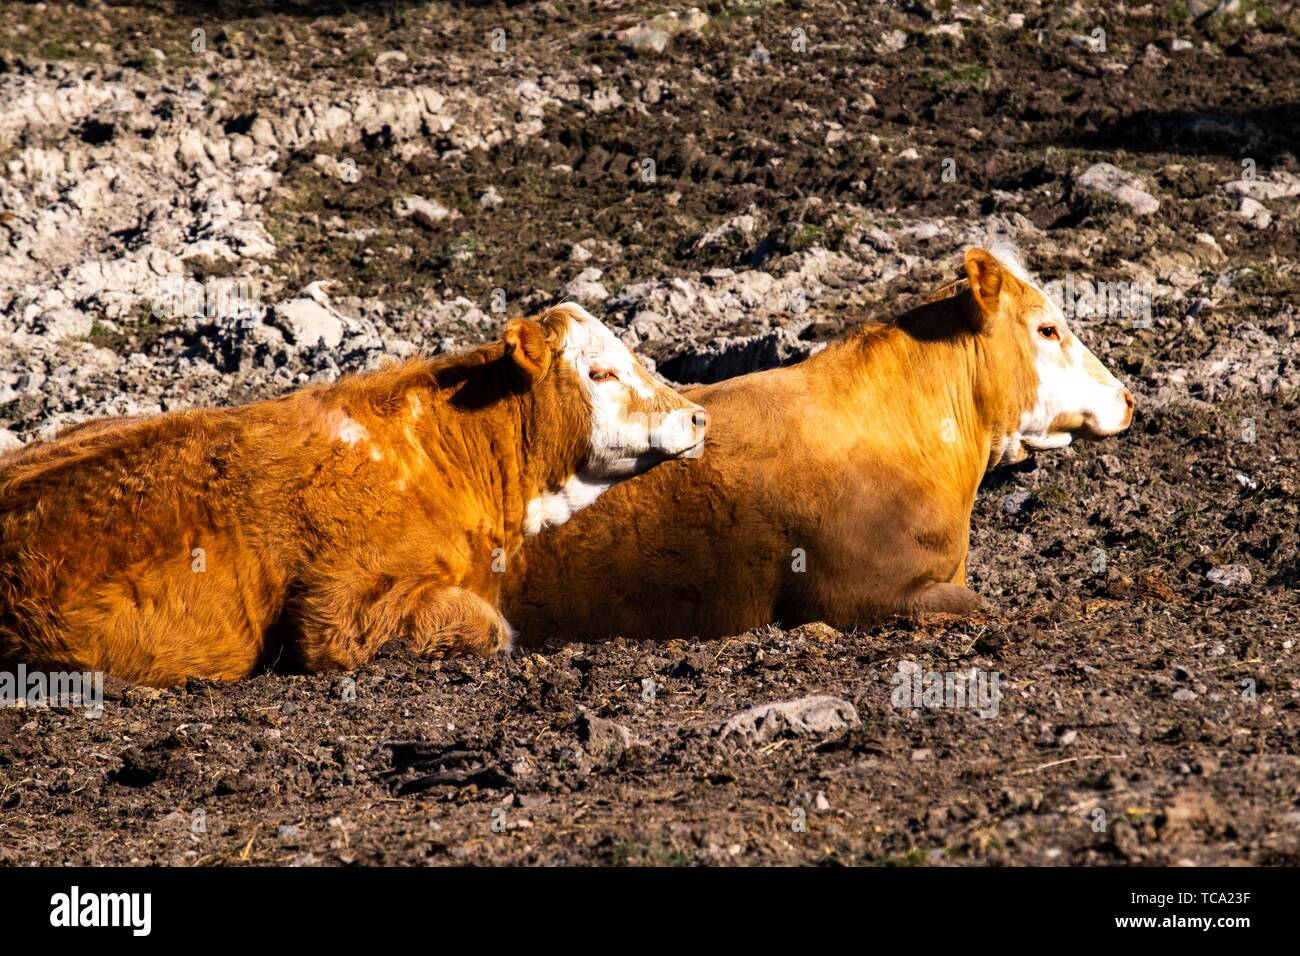 Cows in a field in Sweden. - Stock Image